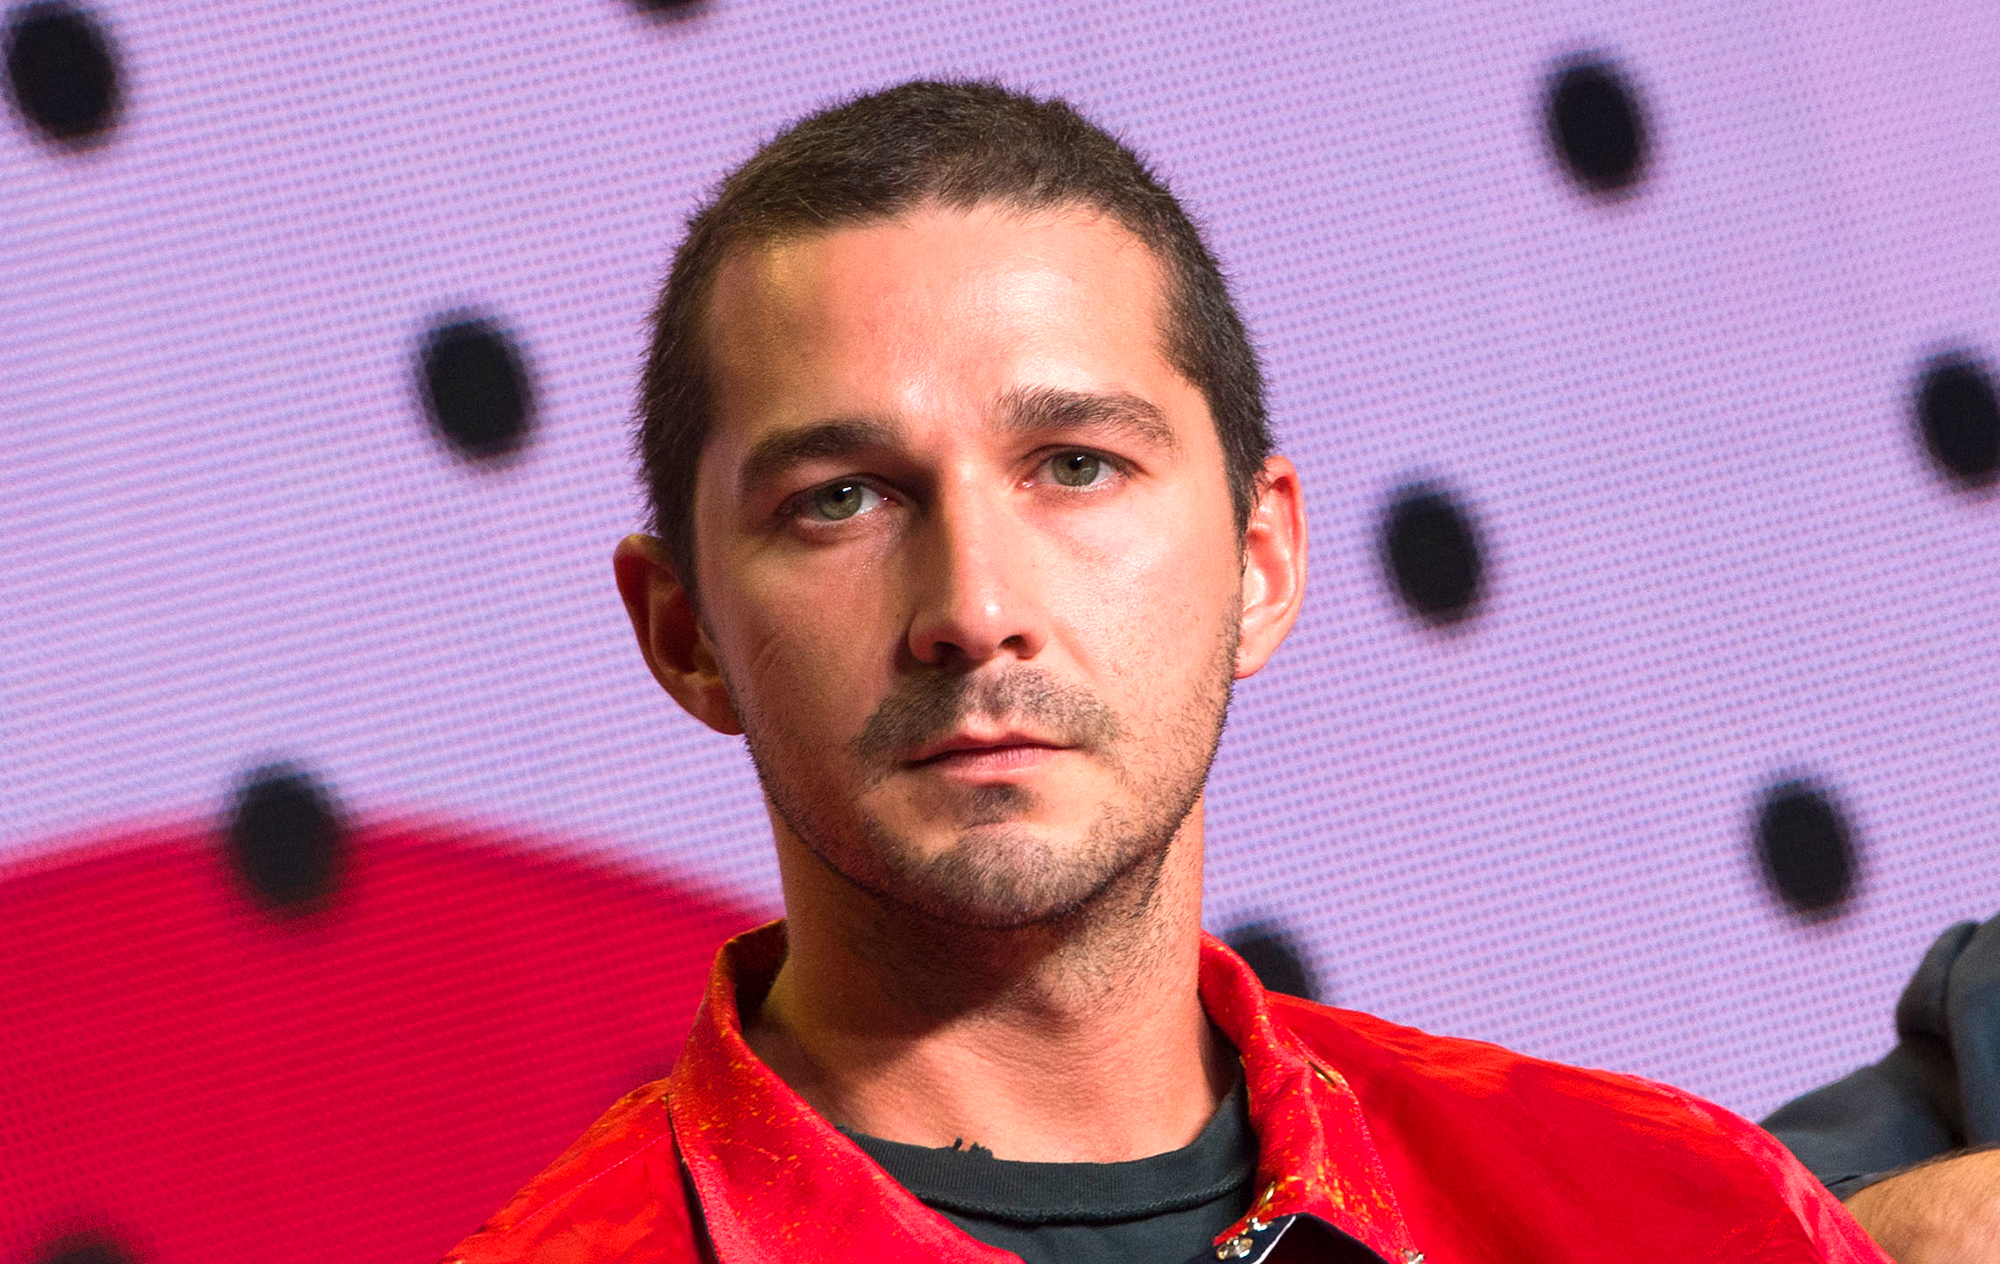 Shia LaBeouf Says Kanye West Took All His Clothes